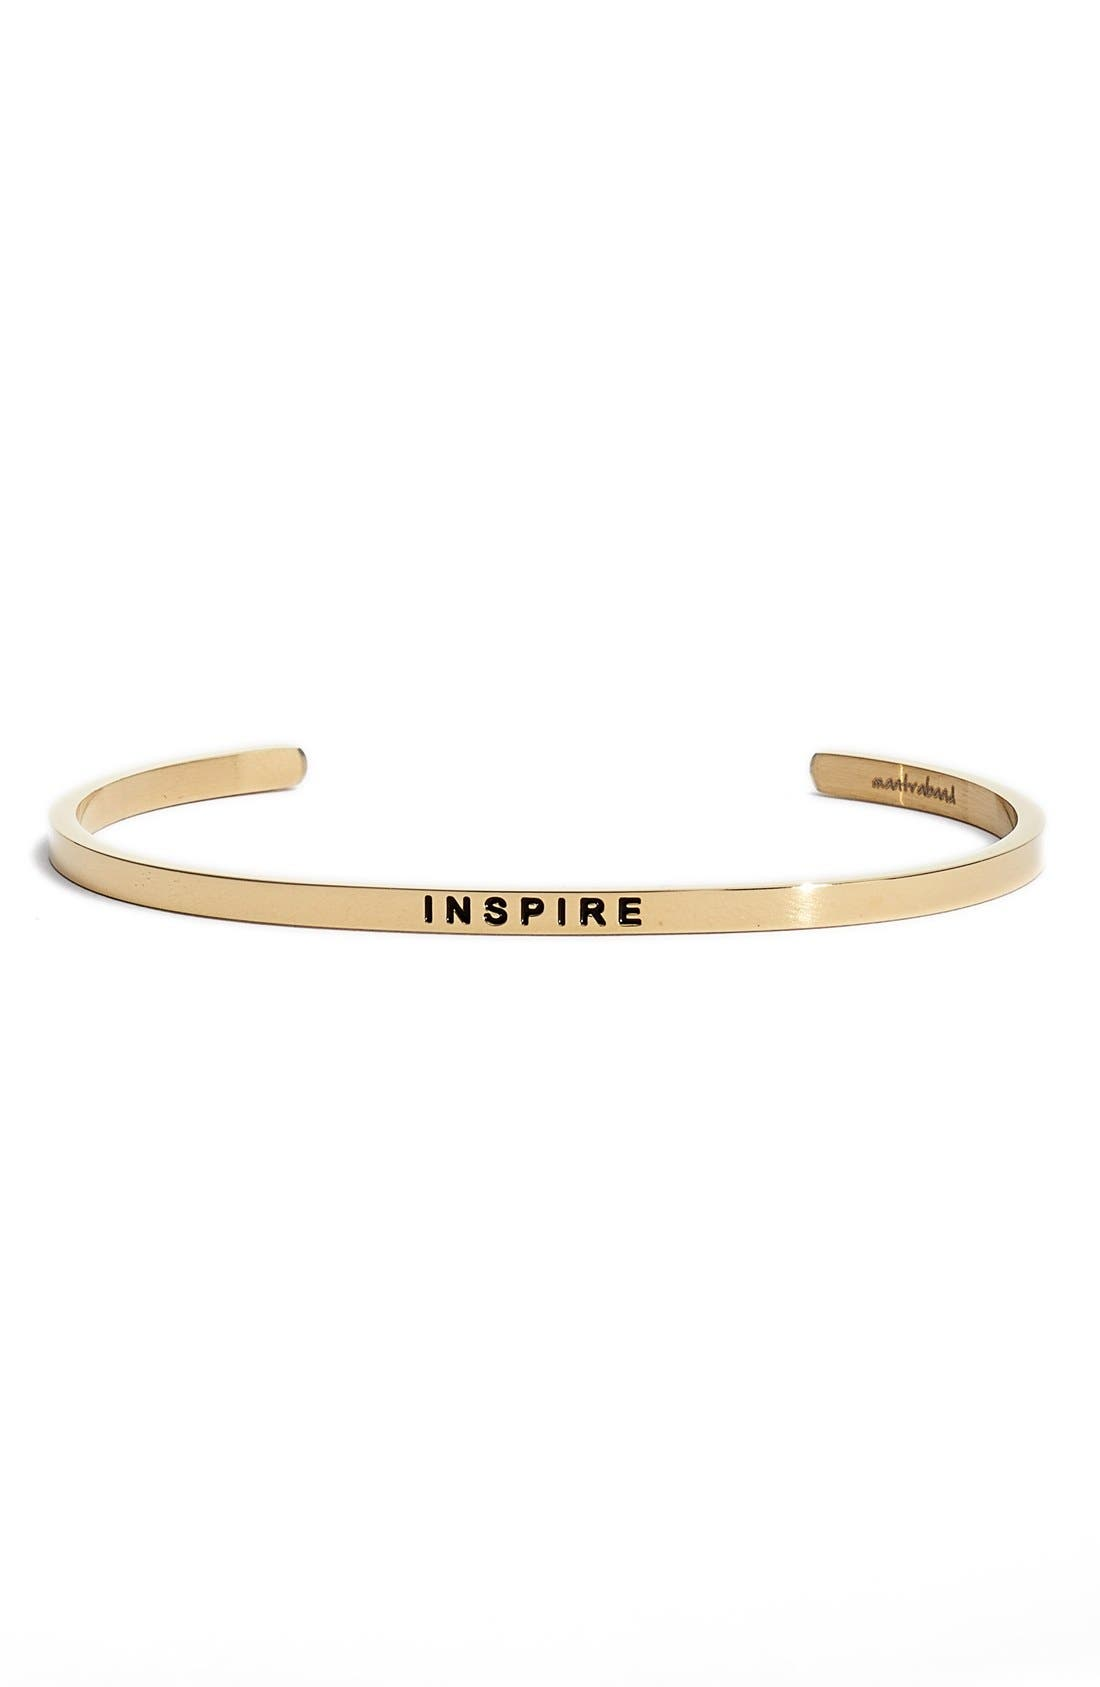 Alternate Image 1 Selected - Mantraband® 'Inspire' Cuff